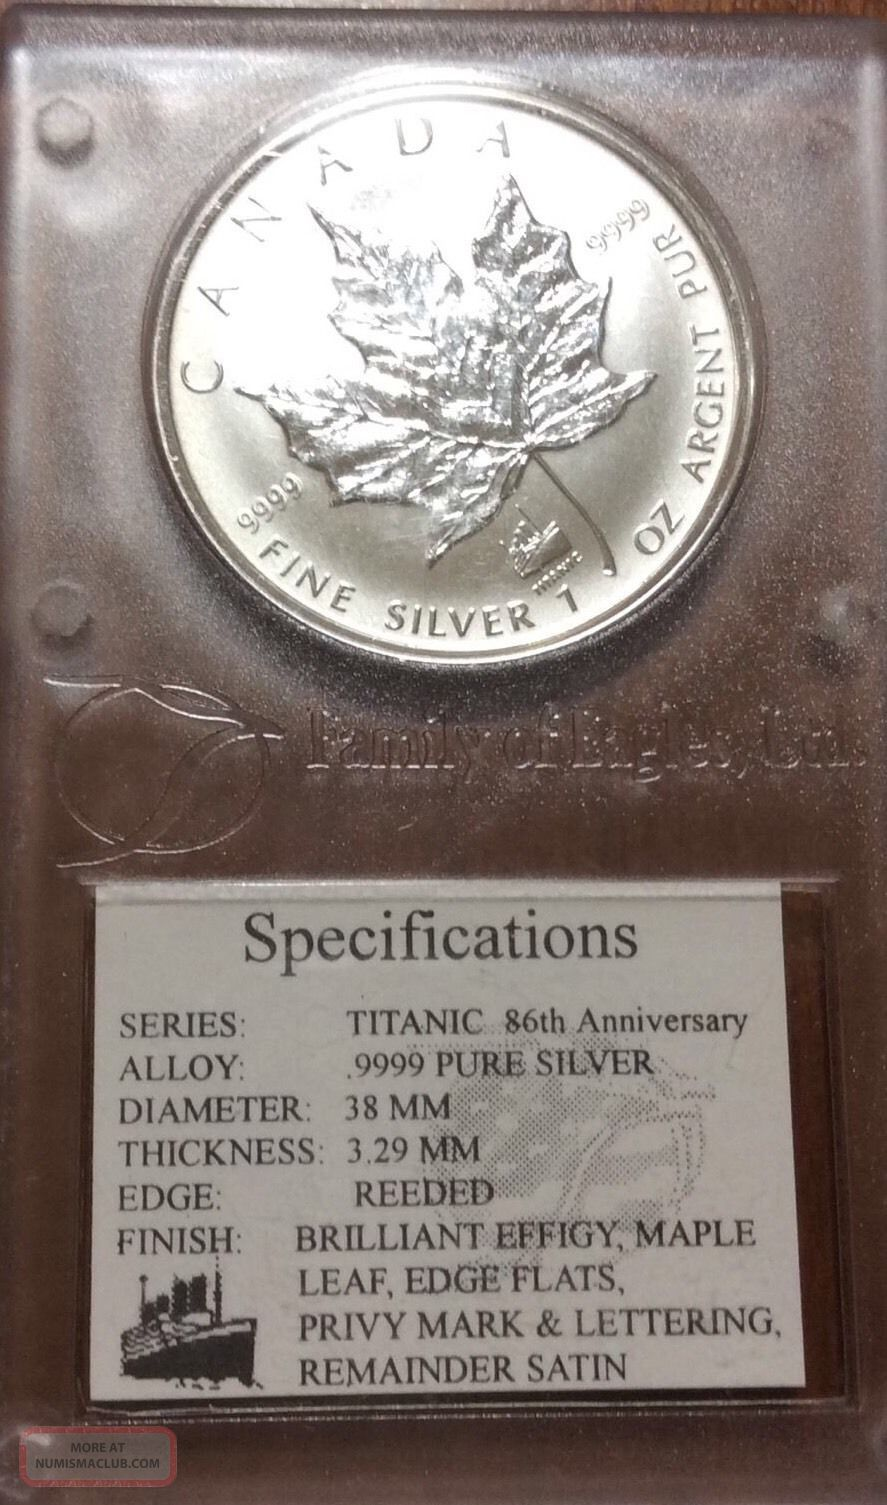 1998 Titanic 86 Anniversary Silver Maple Leaf Coin 5